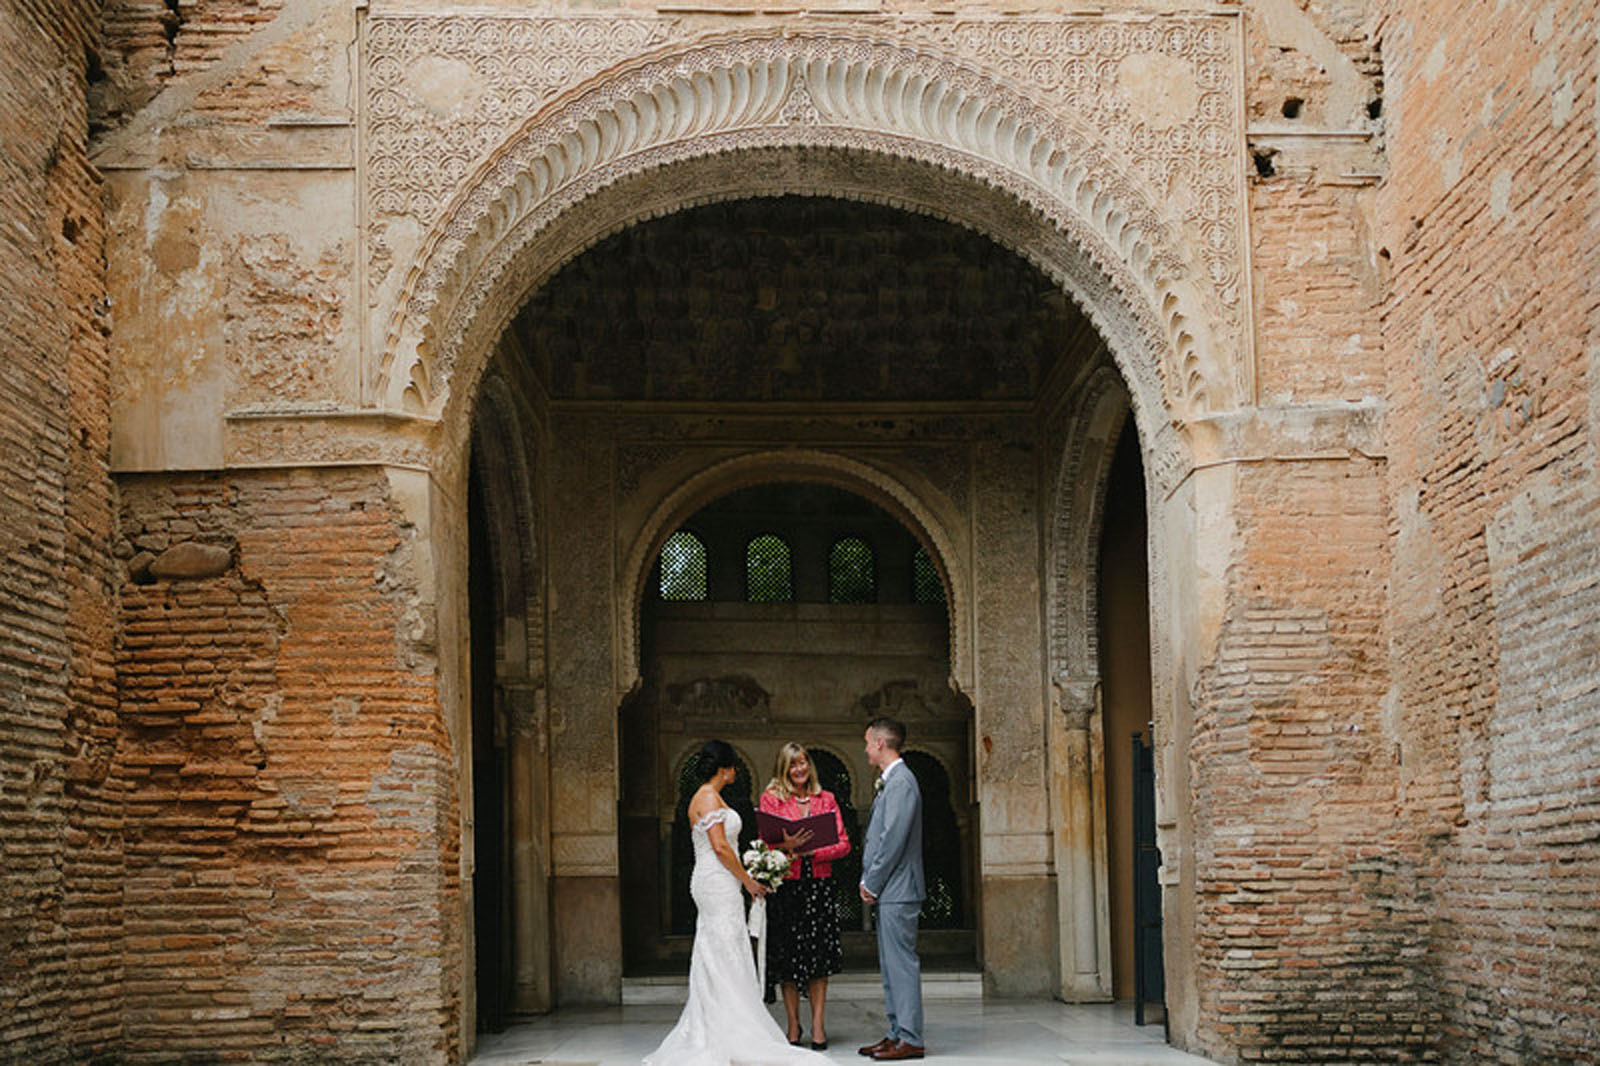 Elopement in Spain at Alhambra palace officiated by Debbie Skyrme photo by Pedro Bellido